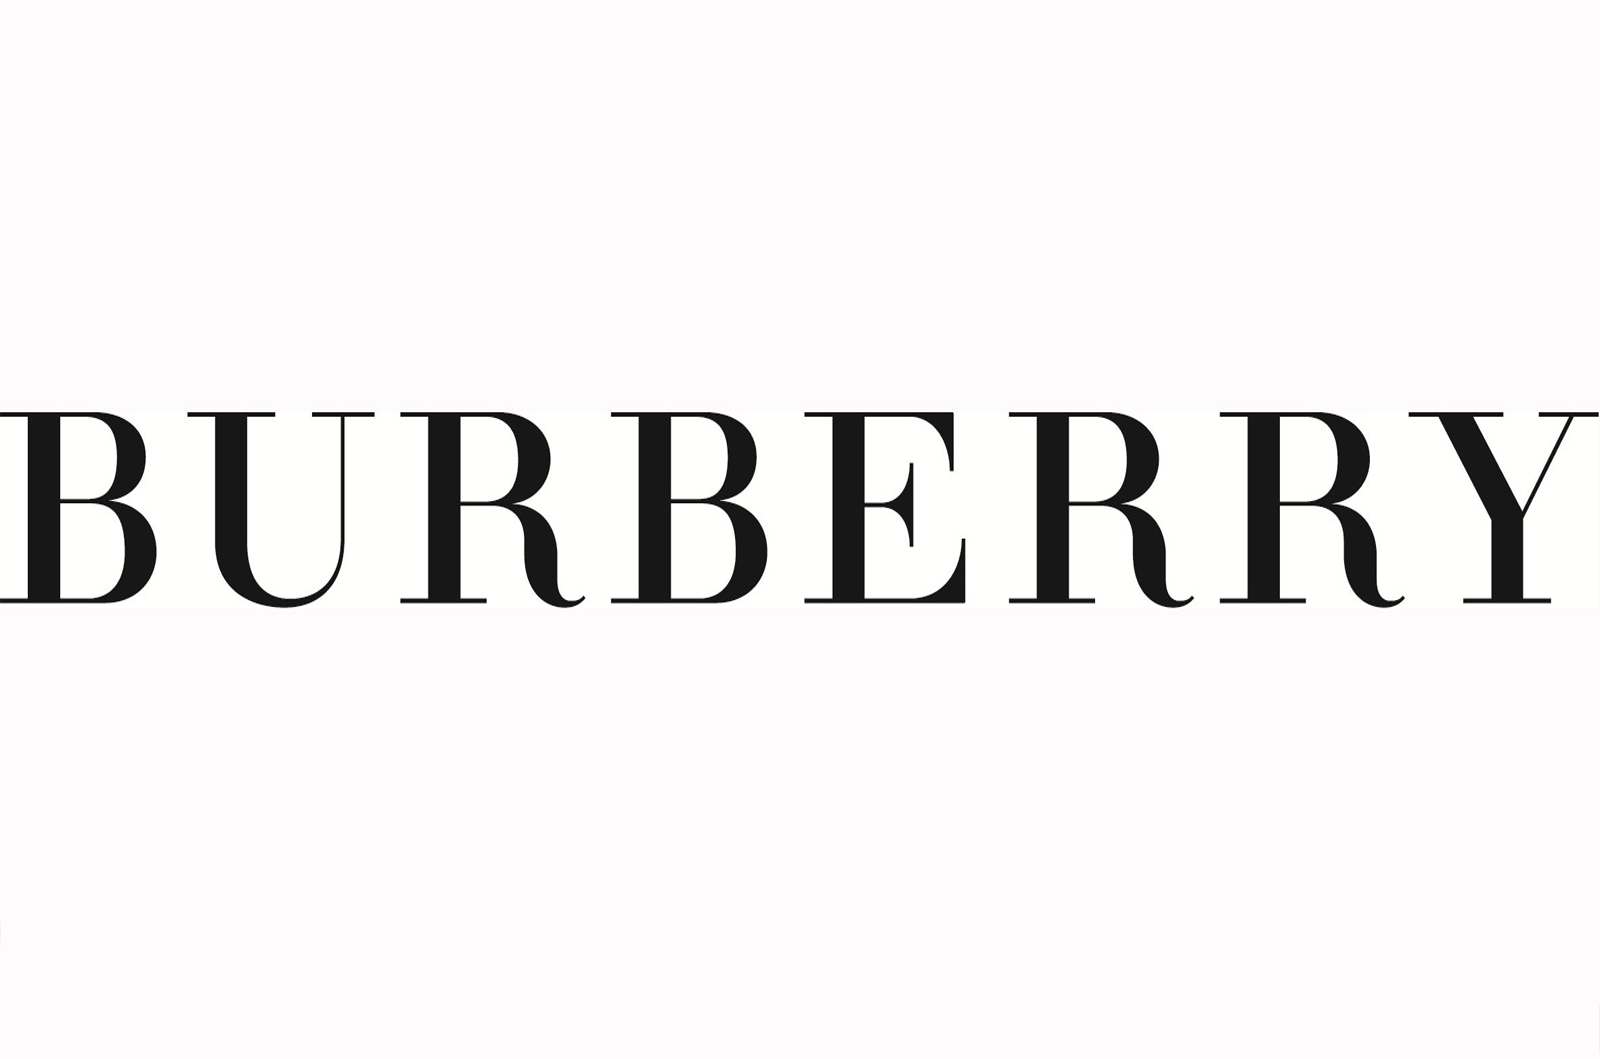 BURBERRY, BURBERRY Brit Sheer For Her Body Lotion, BURBERRY Brit Sheer For Her Body Lotion รีวิว, BURBERRY Brit Sheer For Her Body Lotion ราคา, BURBERRY Brit Sheer For Her Body Lotion ของแท้, BURBERRY Brit Sheer For Her, BURBERRY Brit Sheer For Her Body Lotion 50 ml.